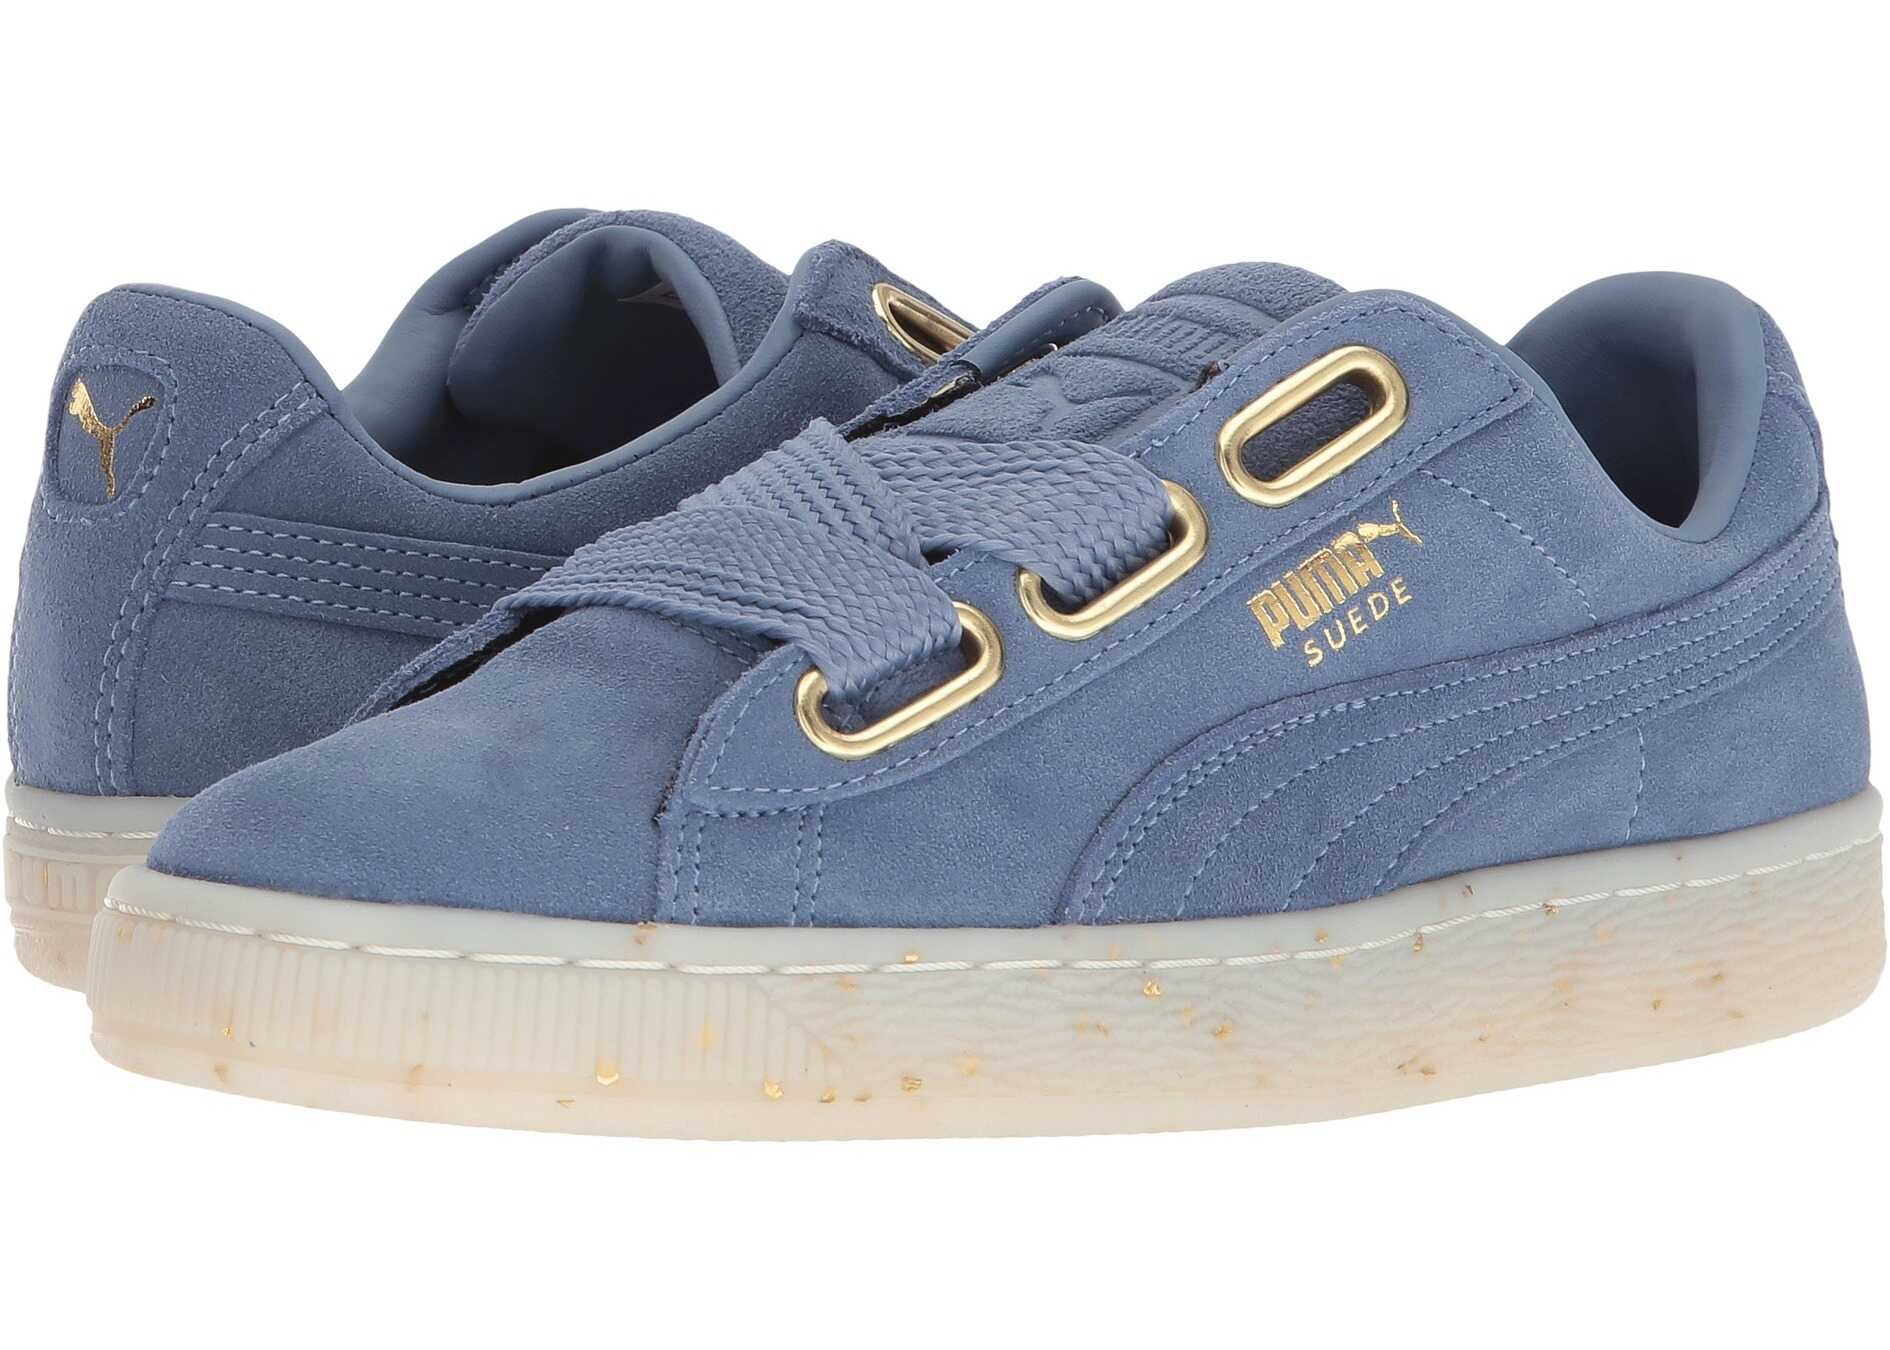 PUMA Suede Heart Celebrate Infinity/Infinity